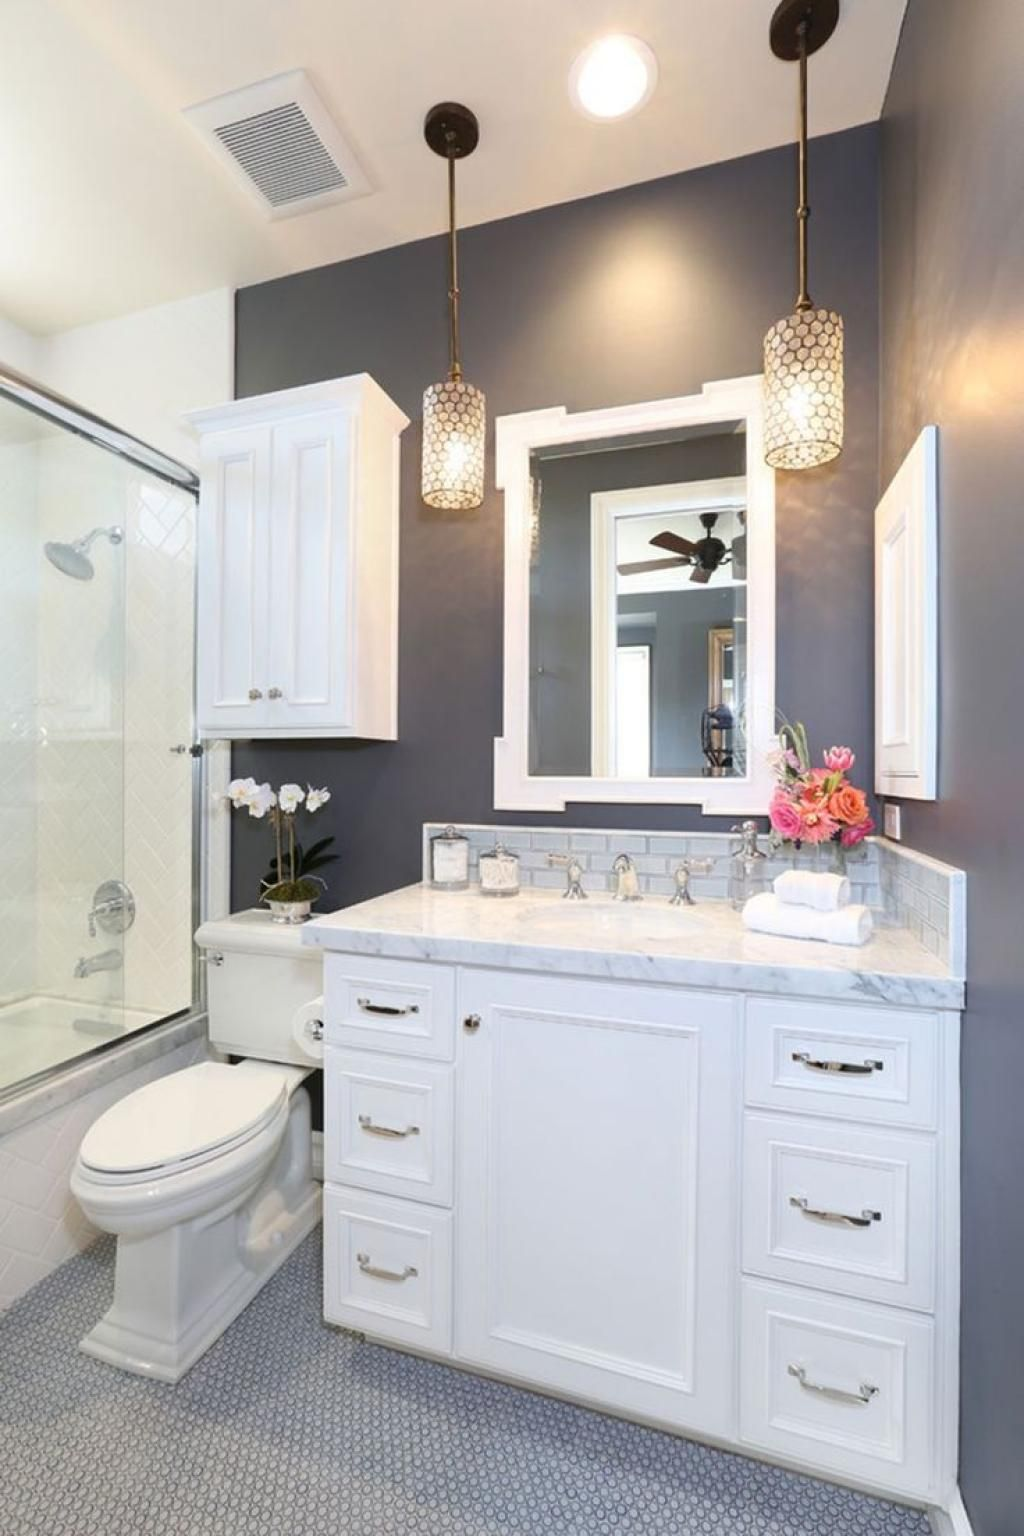 3 Easy Steps to Remodelling your Small Bathroom | White cabinets ...